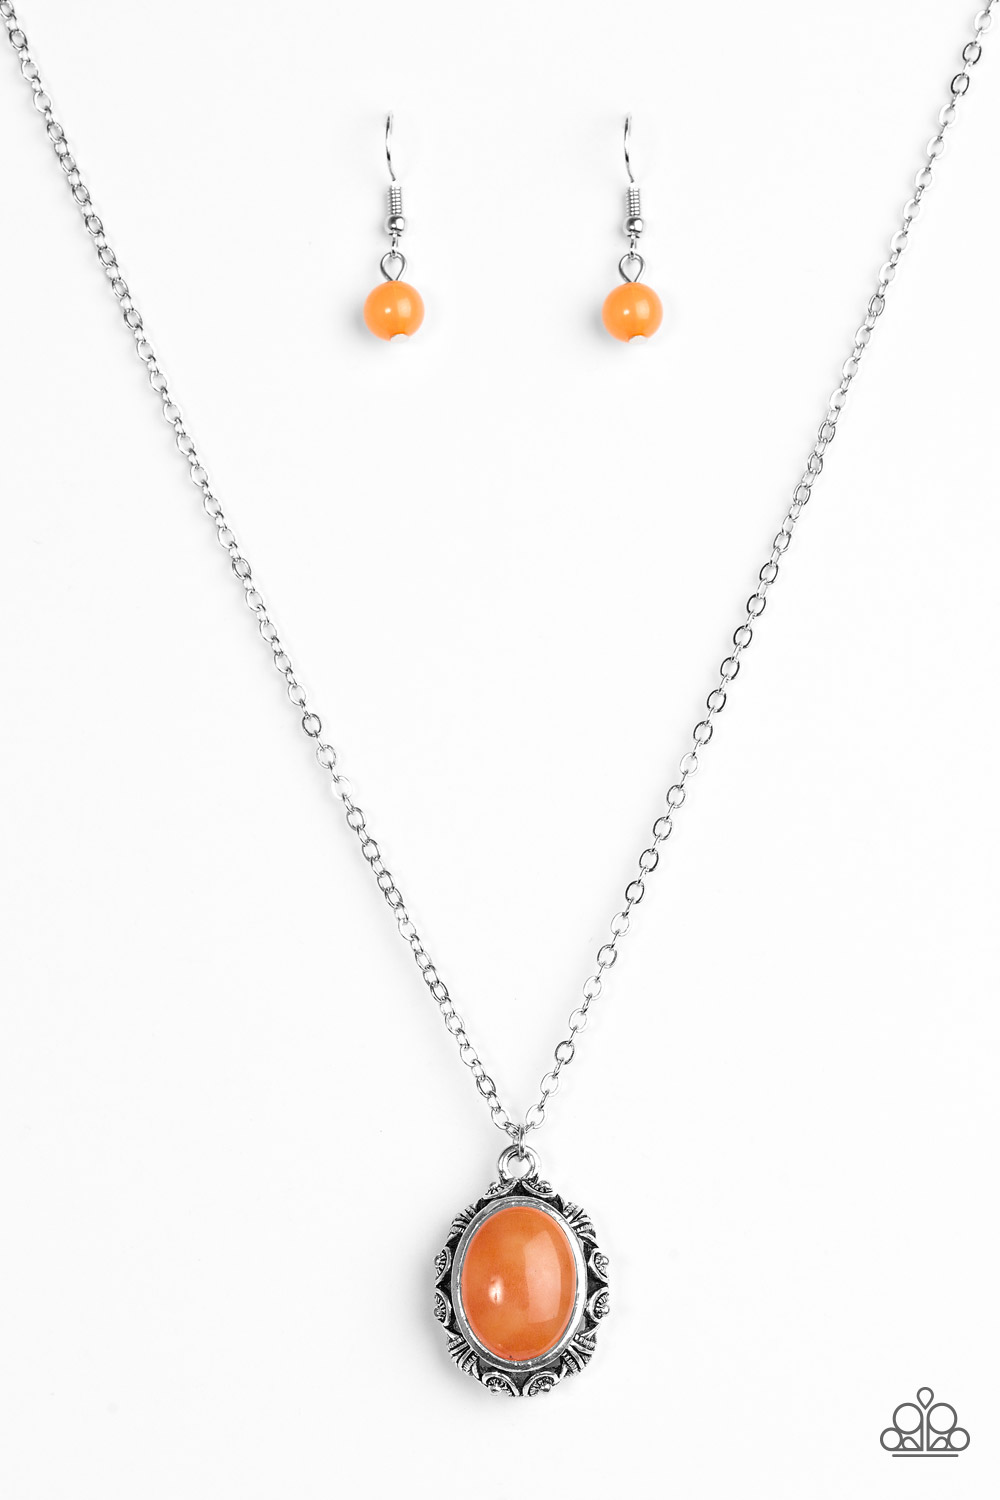 About >> Paparazzi Accessories: Stone Simplicity - Orange